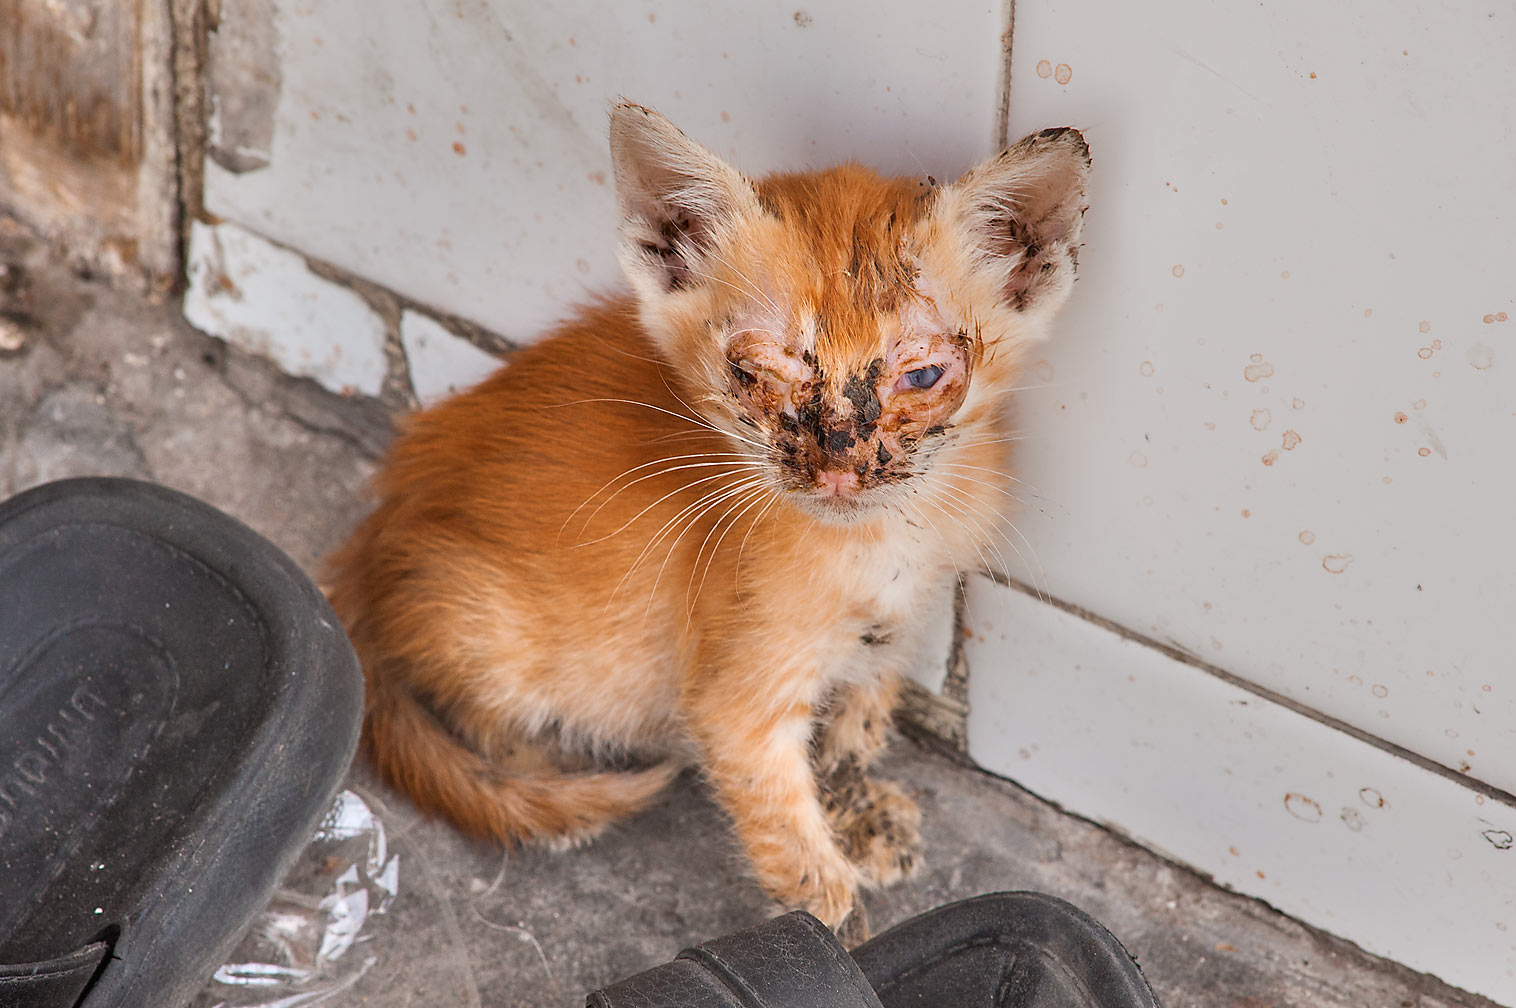 Brown kitten with face infection on Al Najada St. in Musheirib area. Doha, Qatar